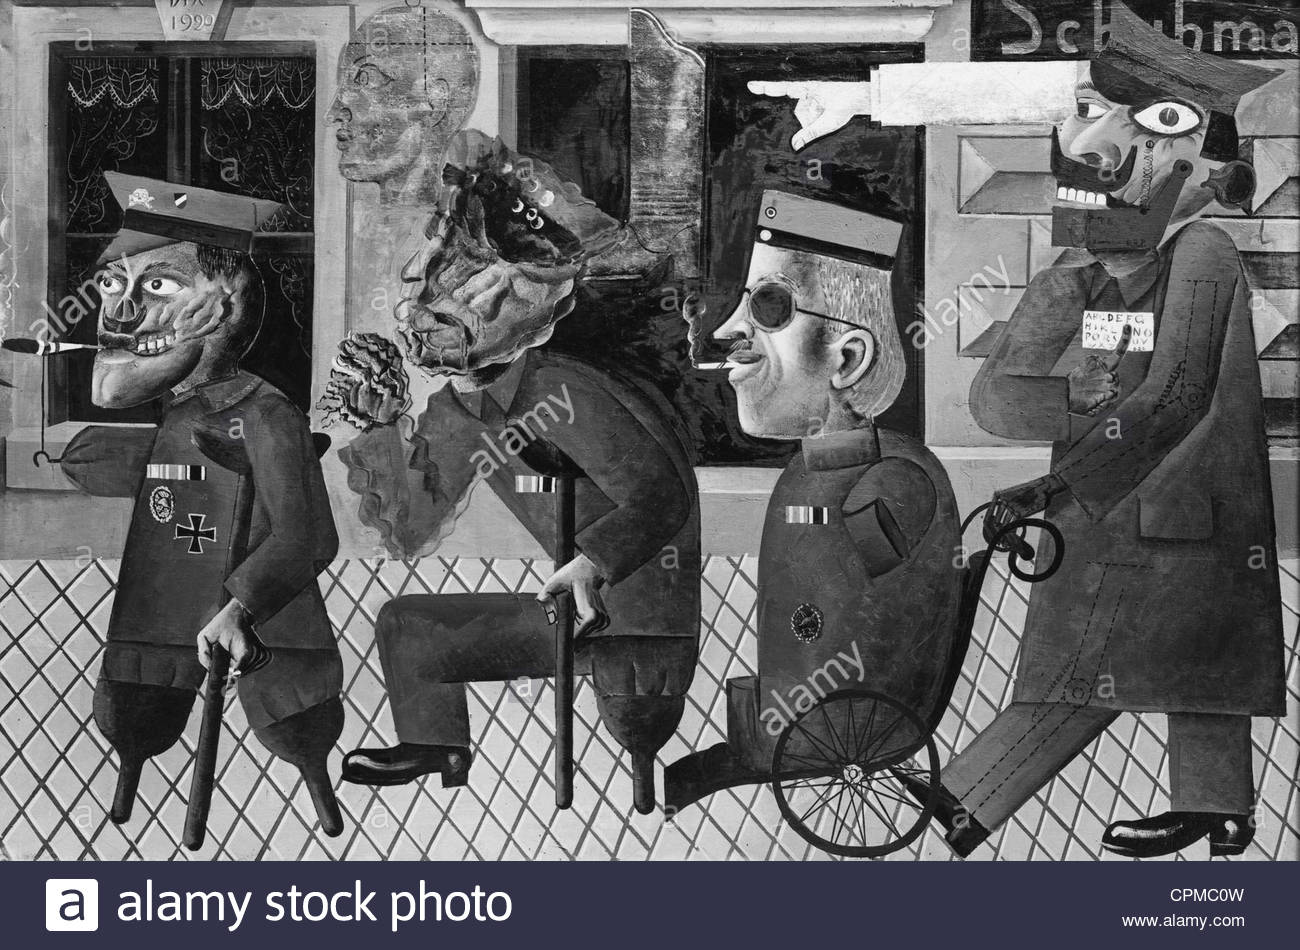 U0027War Cripplesu0027 By Otto Dix, 1920   Stock Image U0027